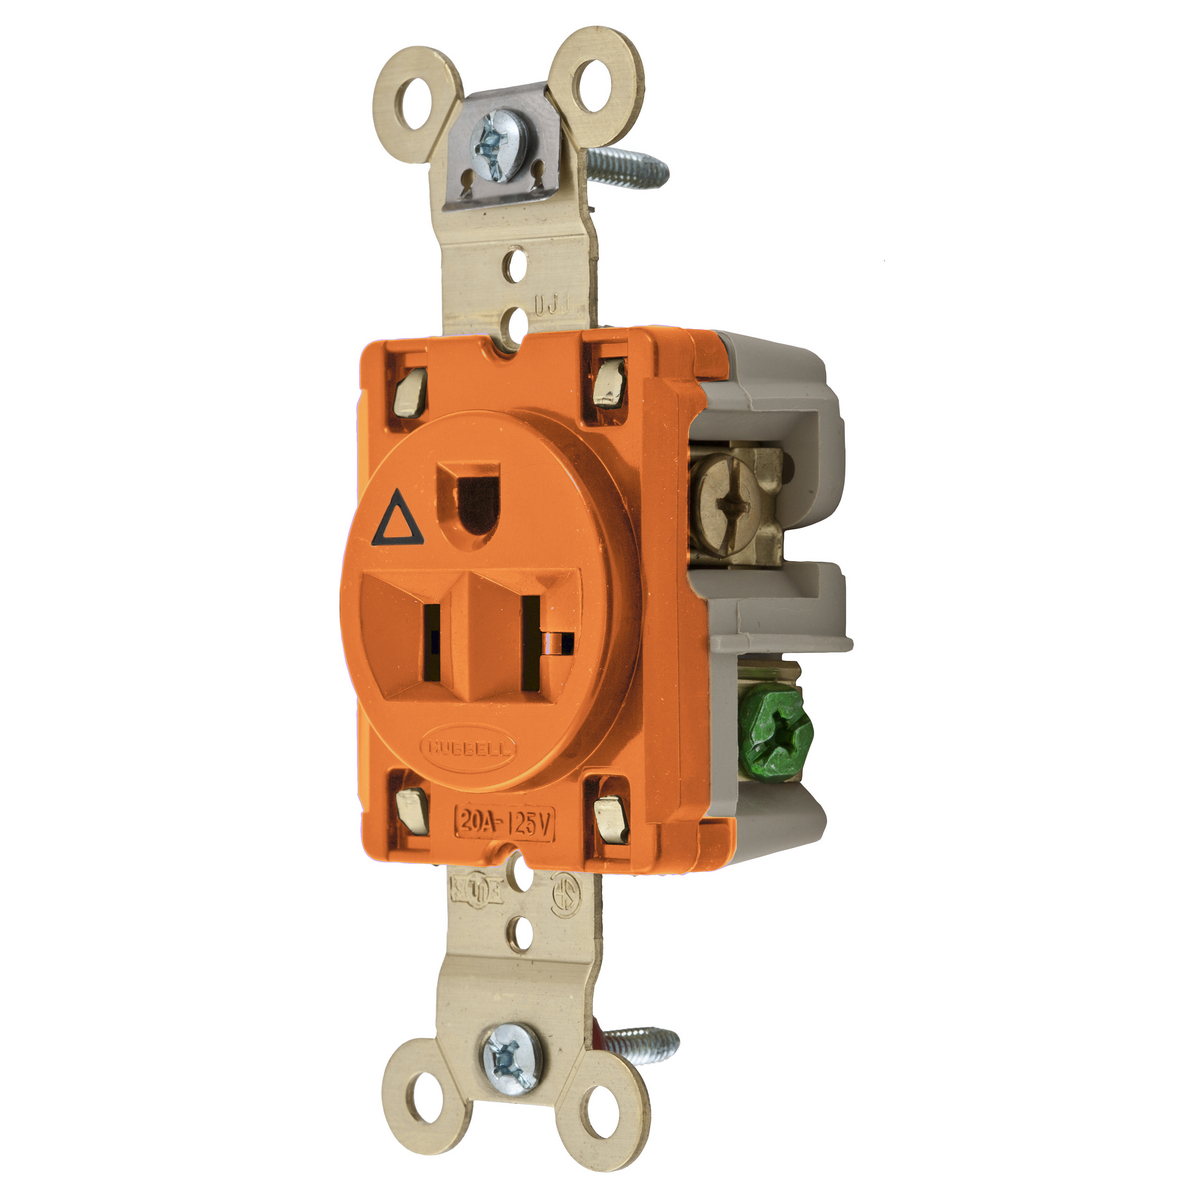 Hubbell IG5361 20 Amp 125 Volt 2-Pole 3-Wire NEMA 5-20R Orange Isolated Ground Single Straight Blade Receptacle